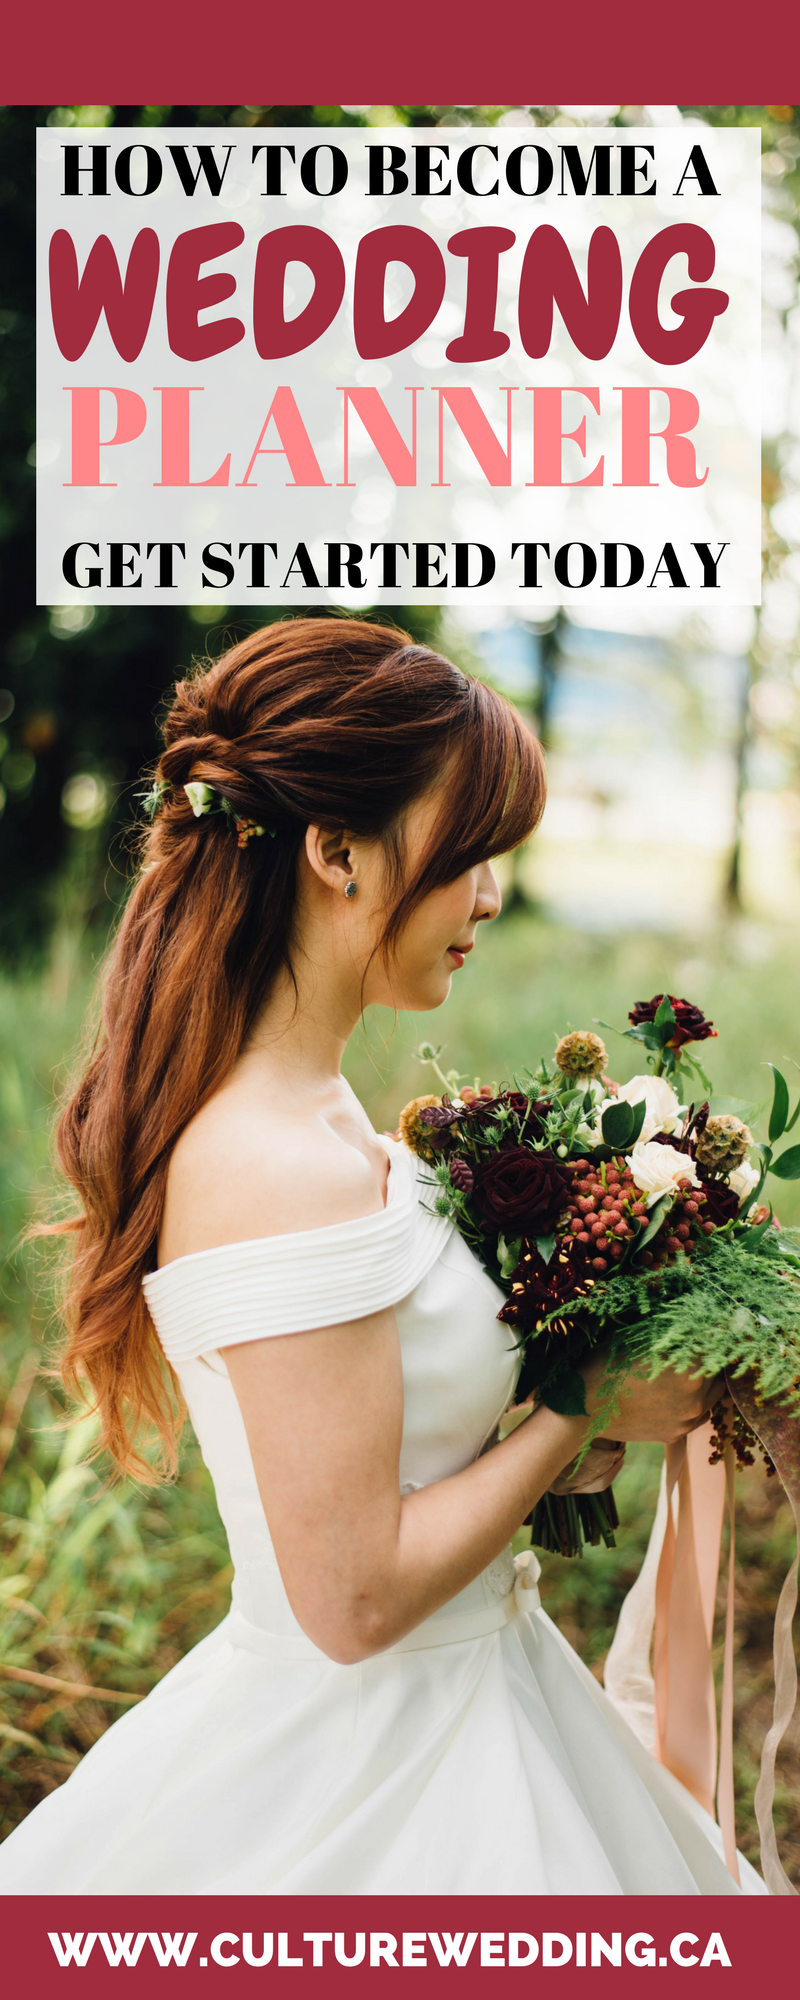 How to become a wedding planner, get started today.